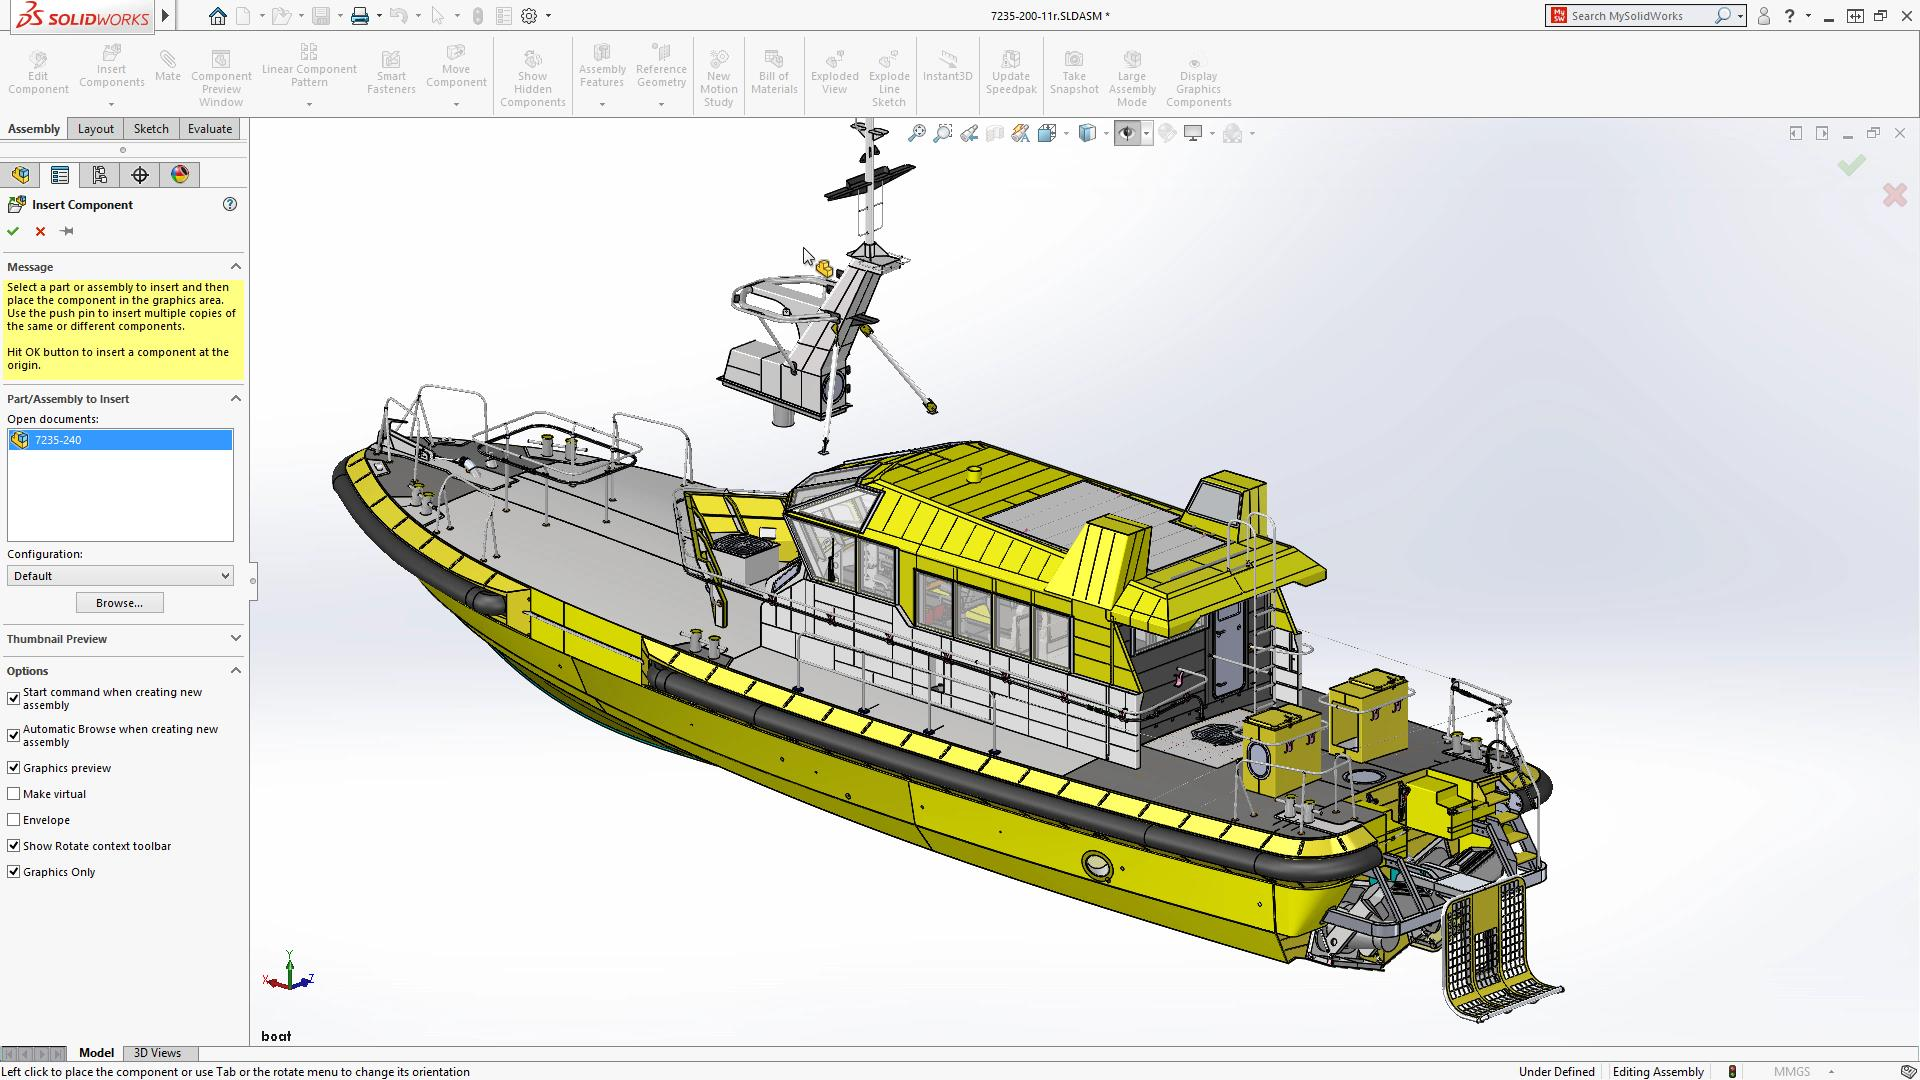 Solidworks Premium Edition 2015